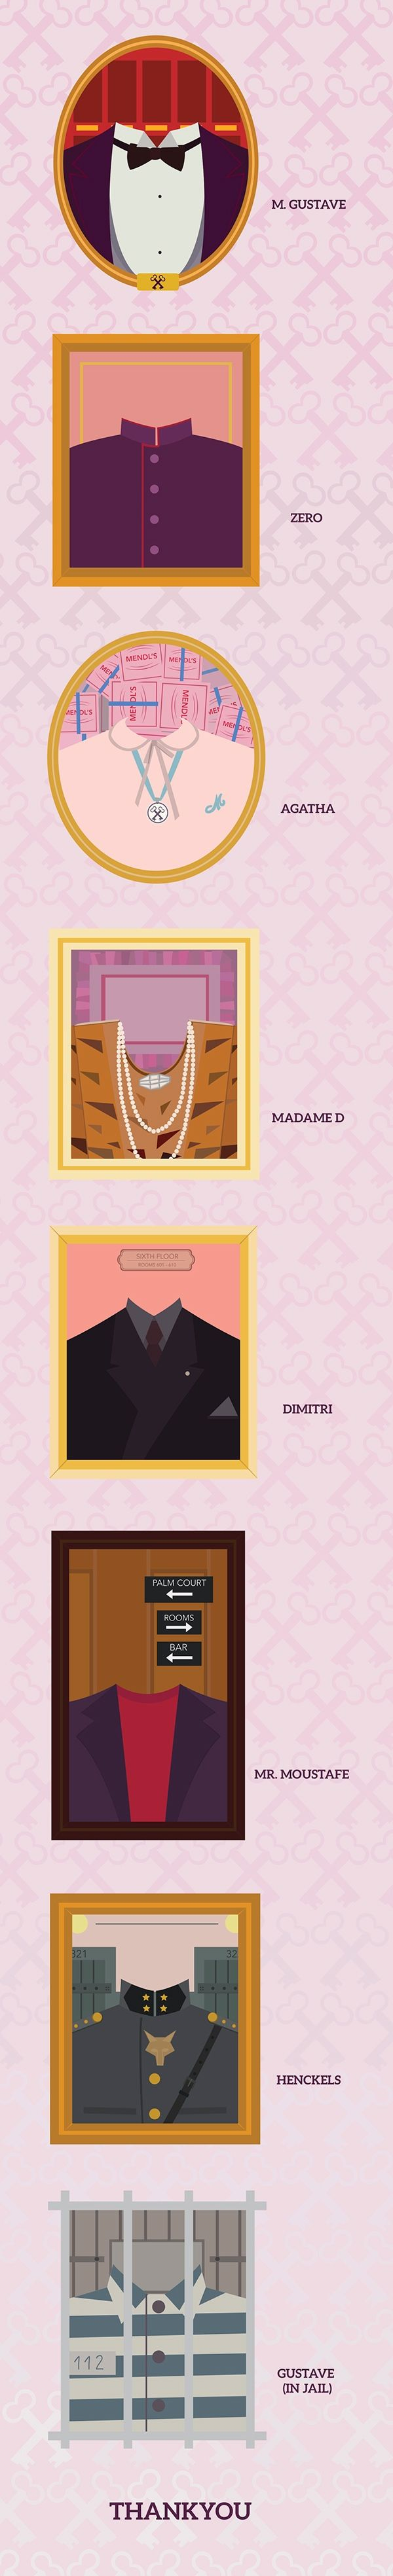 The Grand Budapest Hotel - Title Sequence on Behance